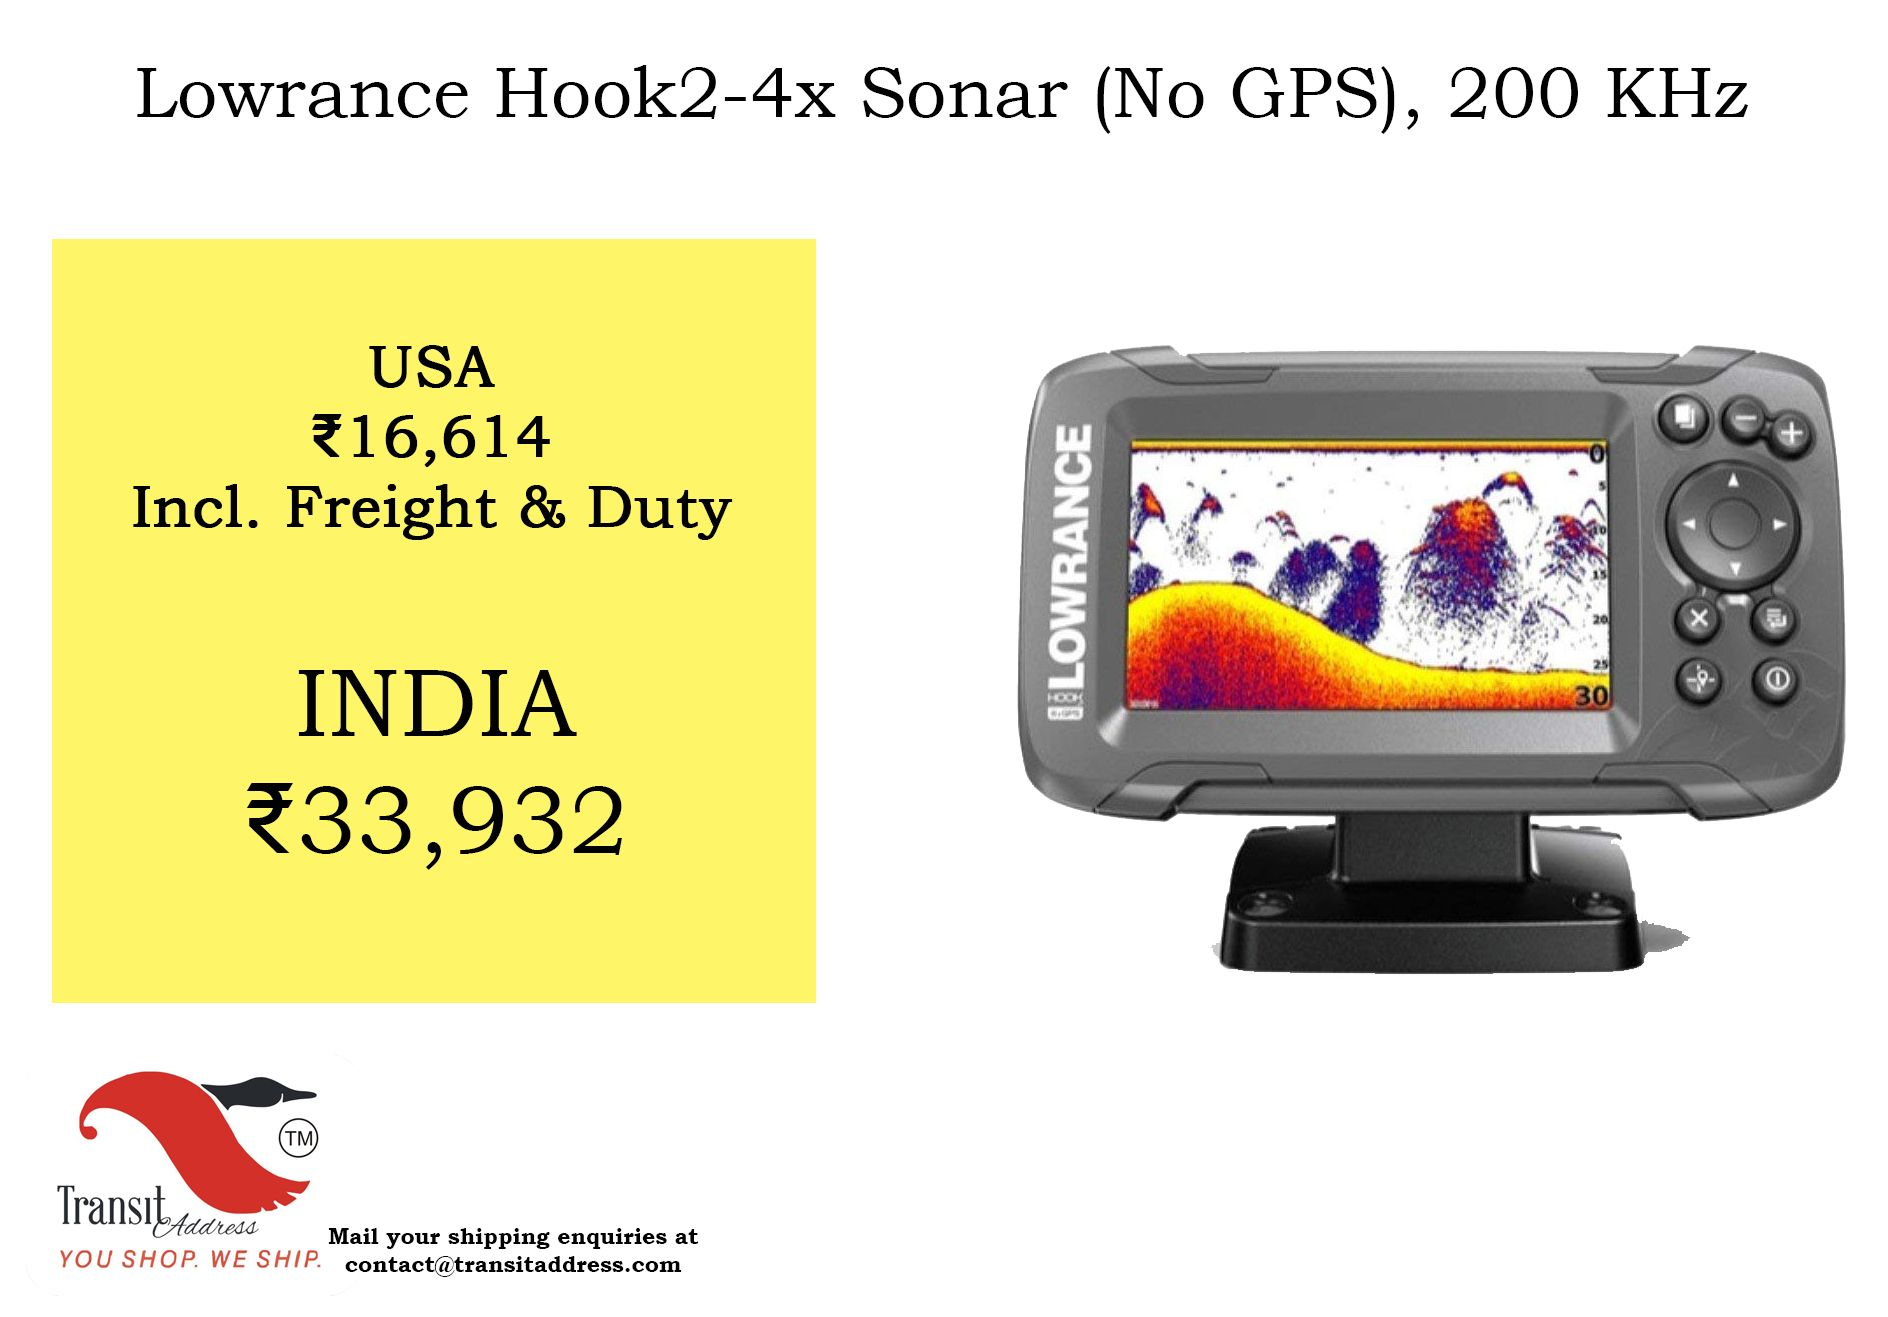 Easy to find fish with double the sonar coverage of